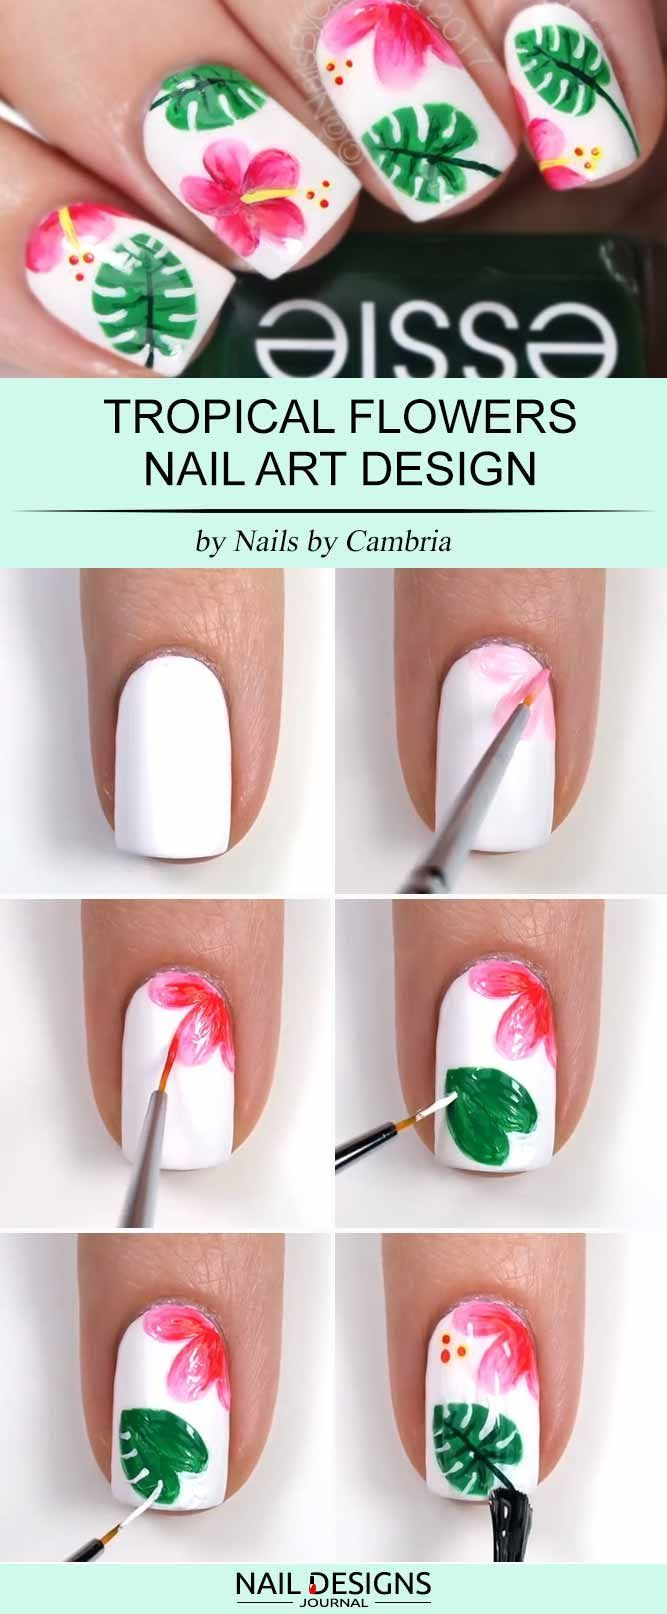 17 Super Easy Nail Designs DIY Tutorials | Pinterest | Flower seeds ...